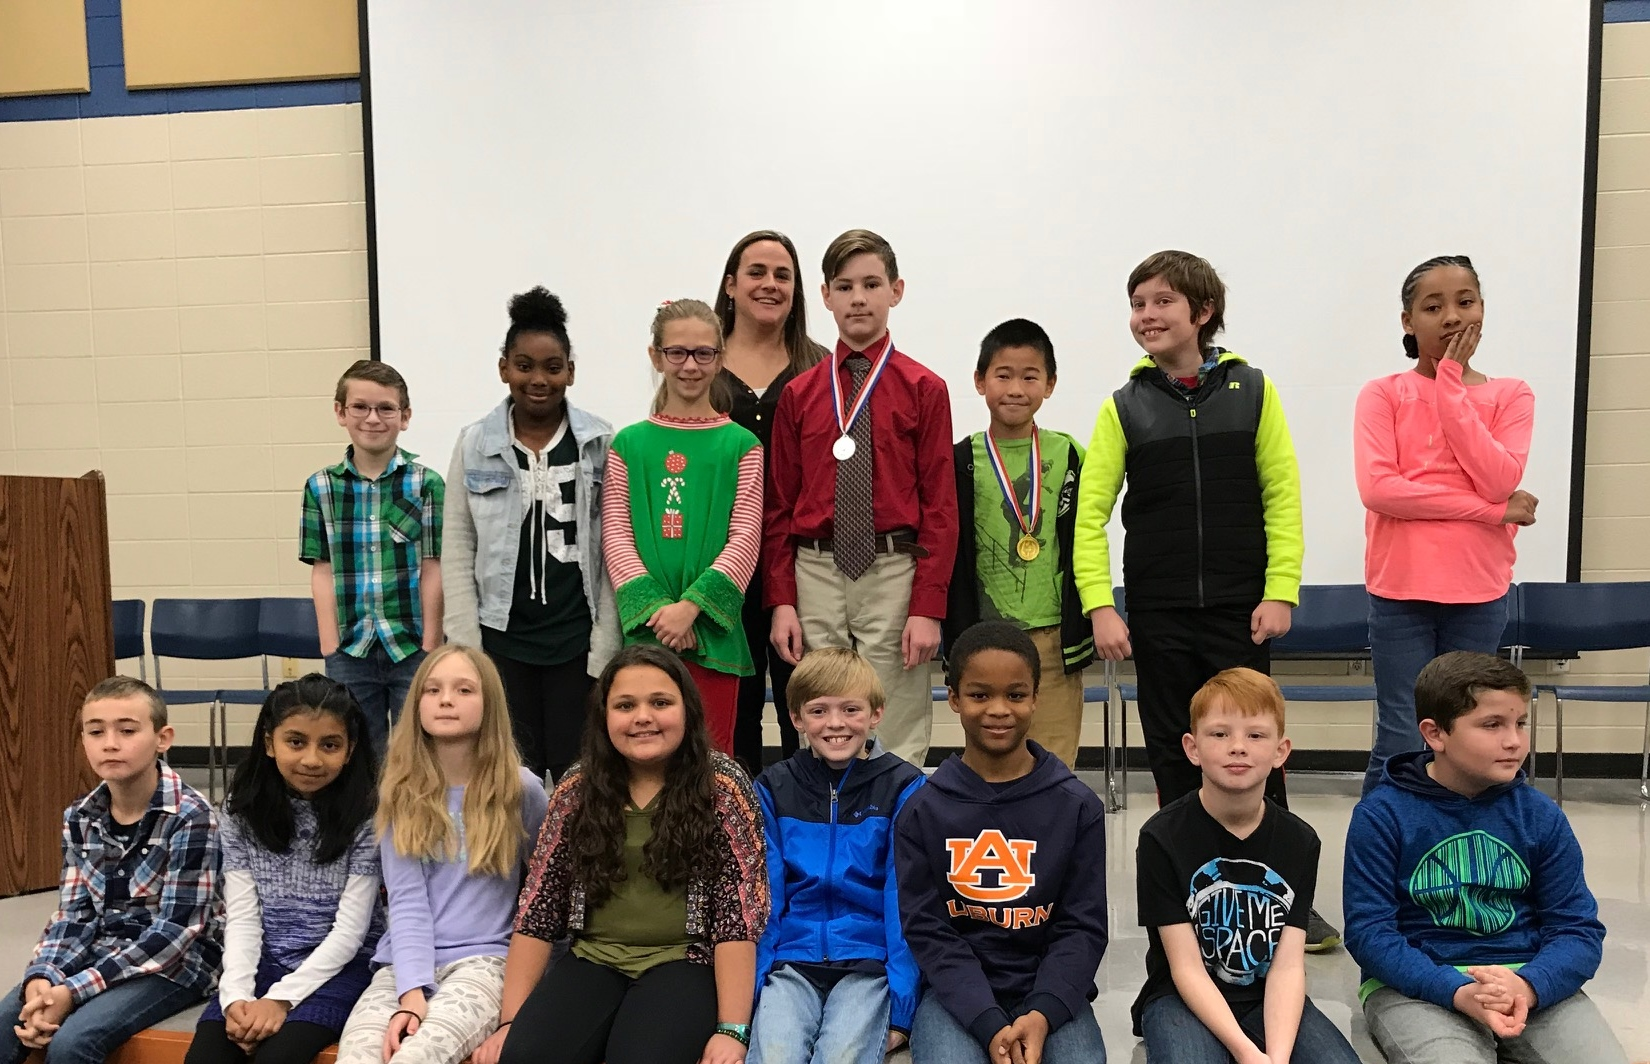 Two spelling bee participants from each class